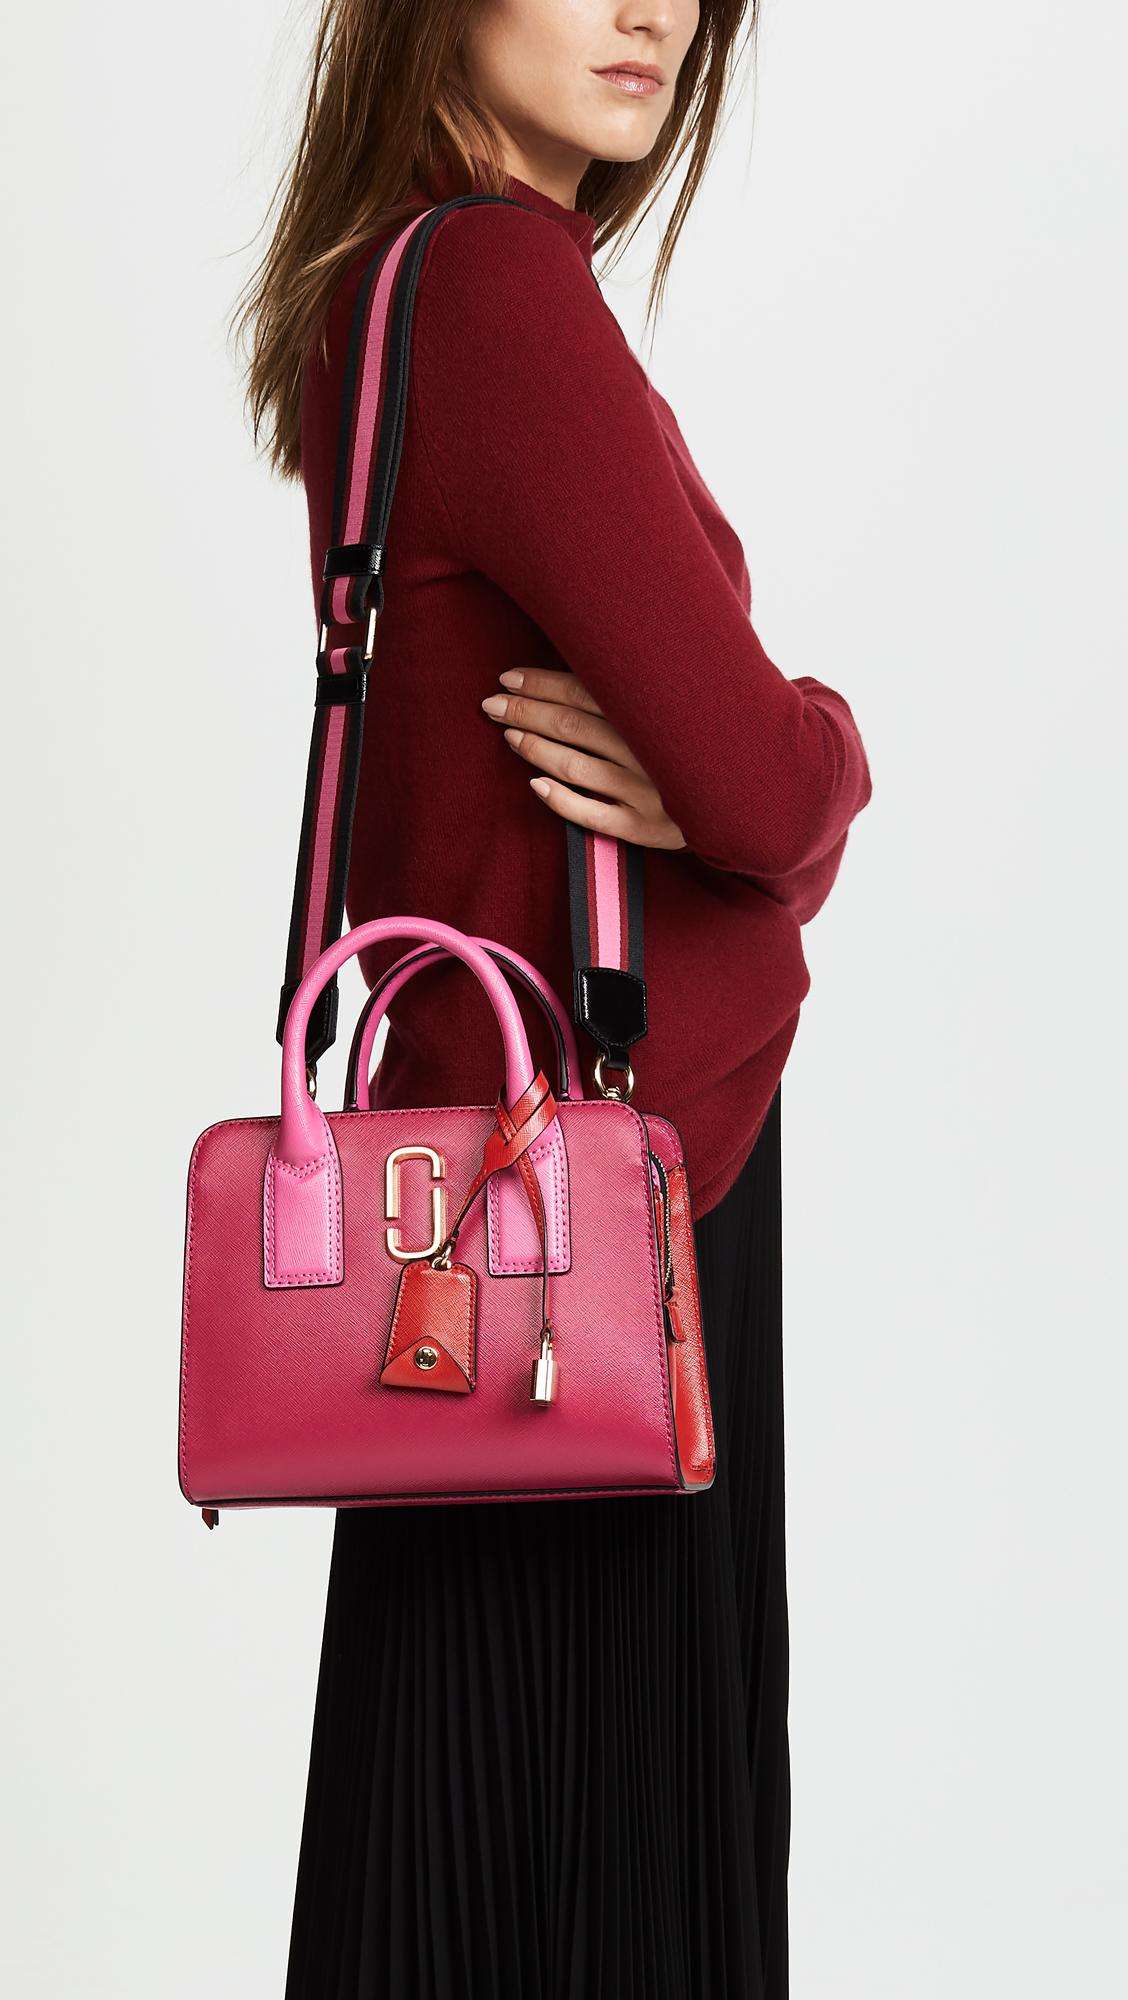 Little Big Shot bag - Pink & Purple Marc Jacobs Best Seller Cheap Sale Eastbay Clearance For Sale For Cheap Price 4uPM5